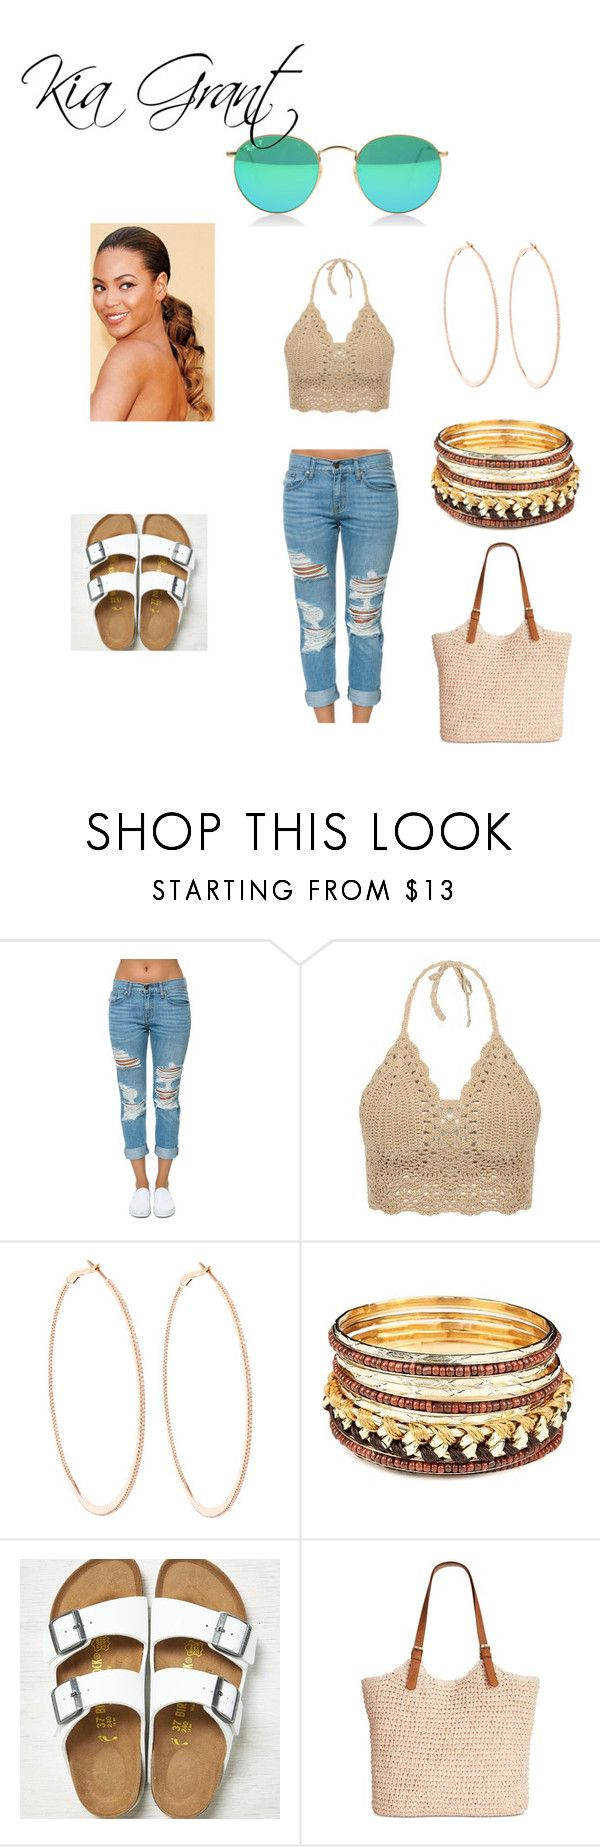 """""""You Could Use A Vacation...."""" by kiagrant on Polyvore featuring Pistola, Rosa de la Cruz, American Eagle Outfitters and Straw Studios"""